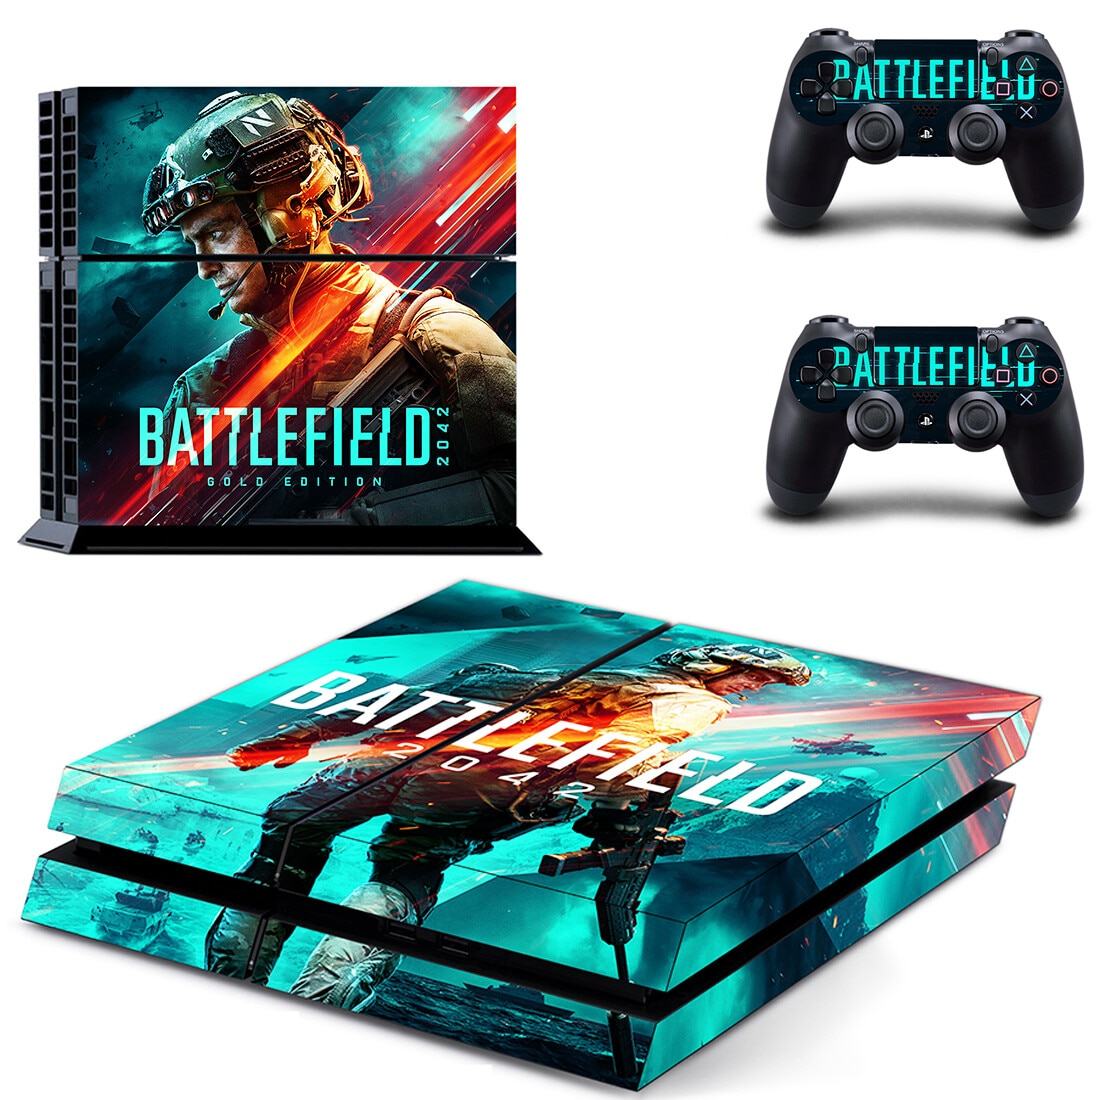 Battlefield 2042 PS4 Stickers Play station 4 Skin Sticker Decals Cover For PlayStation 4 PS4 Console & Controller Skins Vinyl